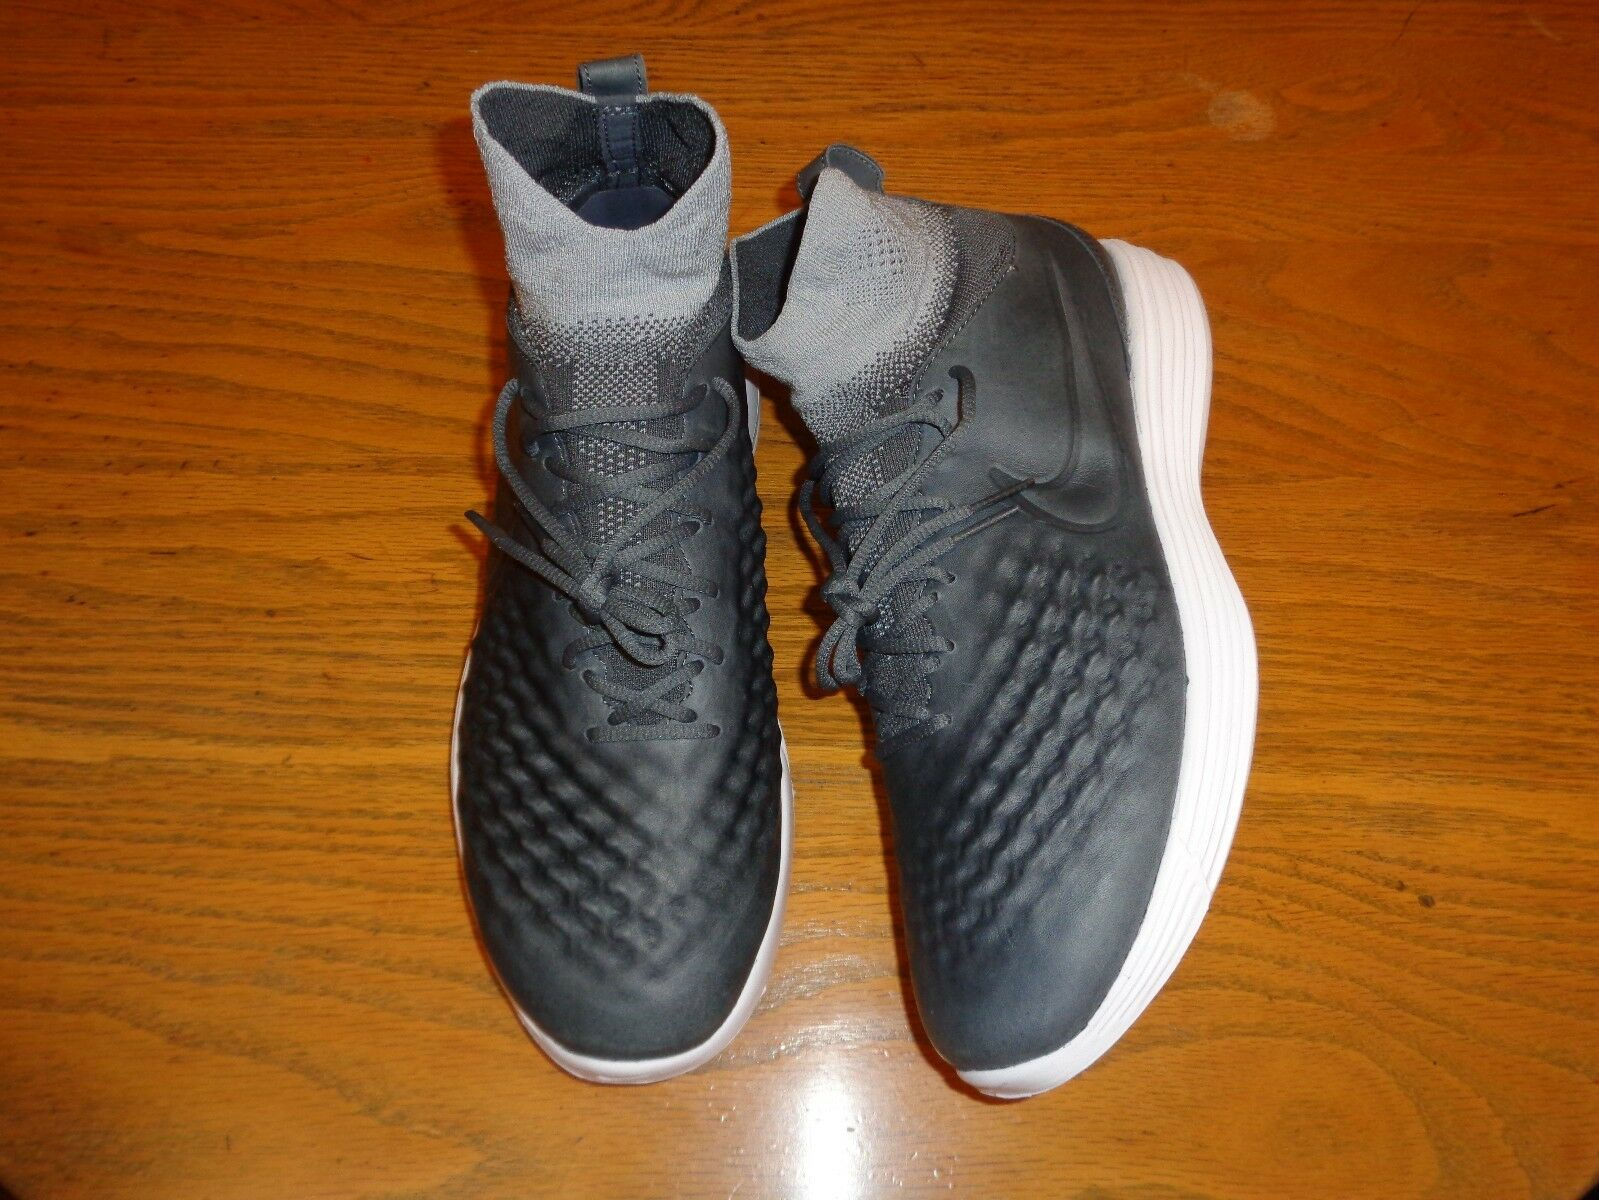 NIKE LUNAR MAGISTA II FLYKNIT MENS ATHLETIC SHOES 852614-002 NEW SIZE 11.5